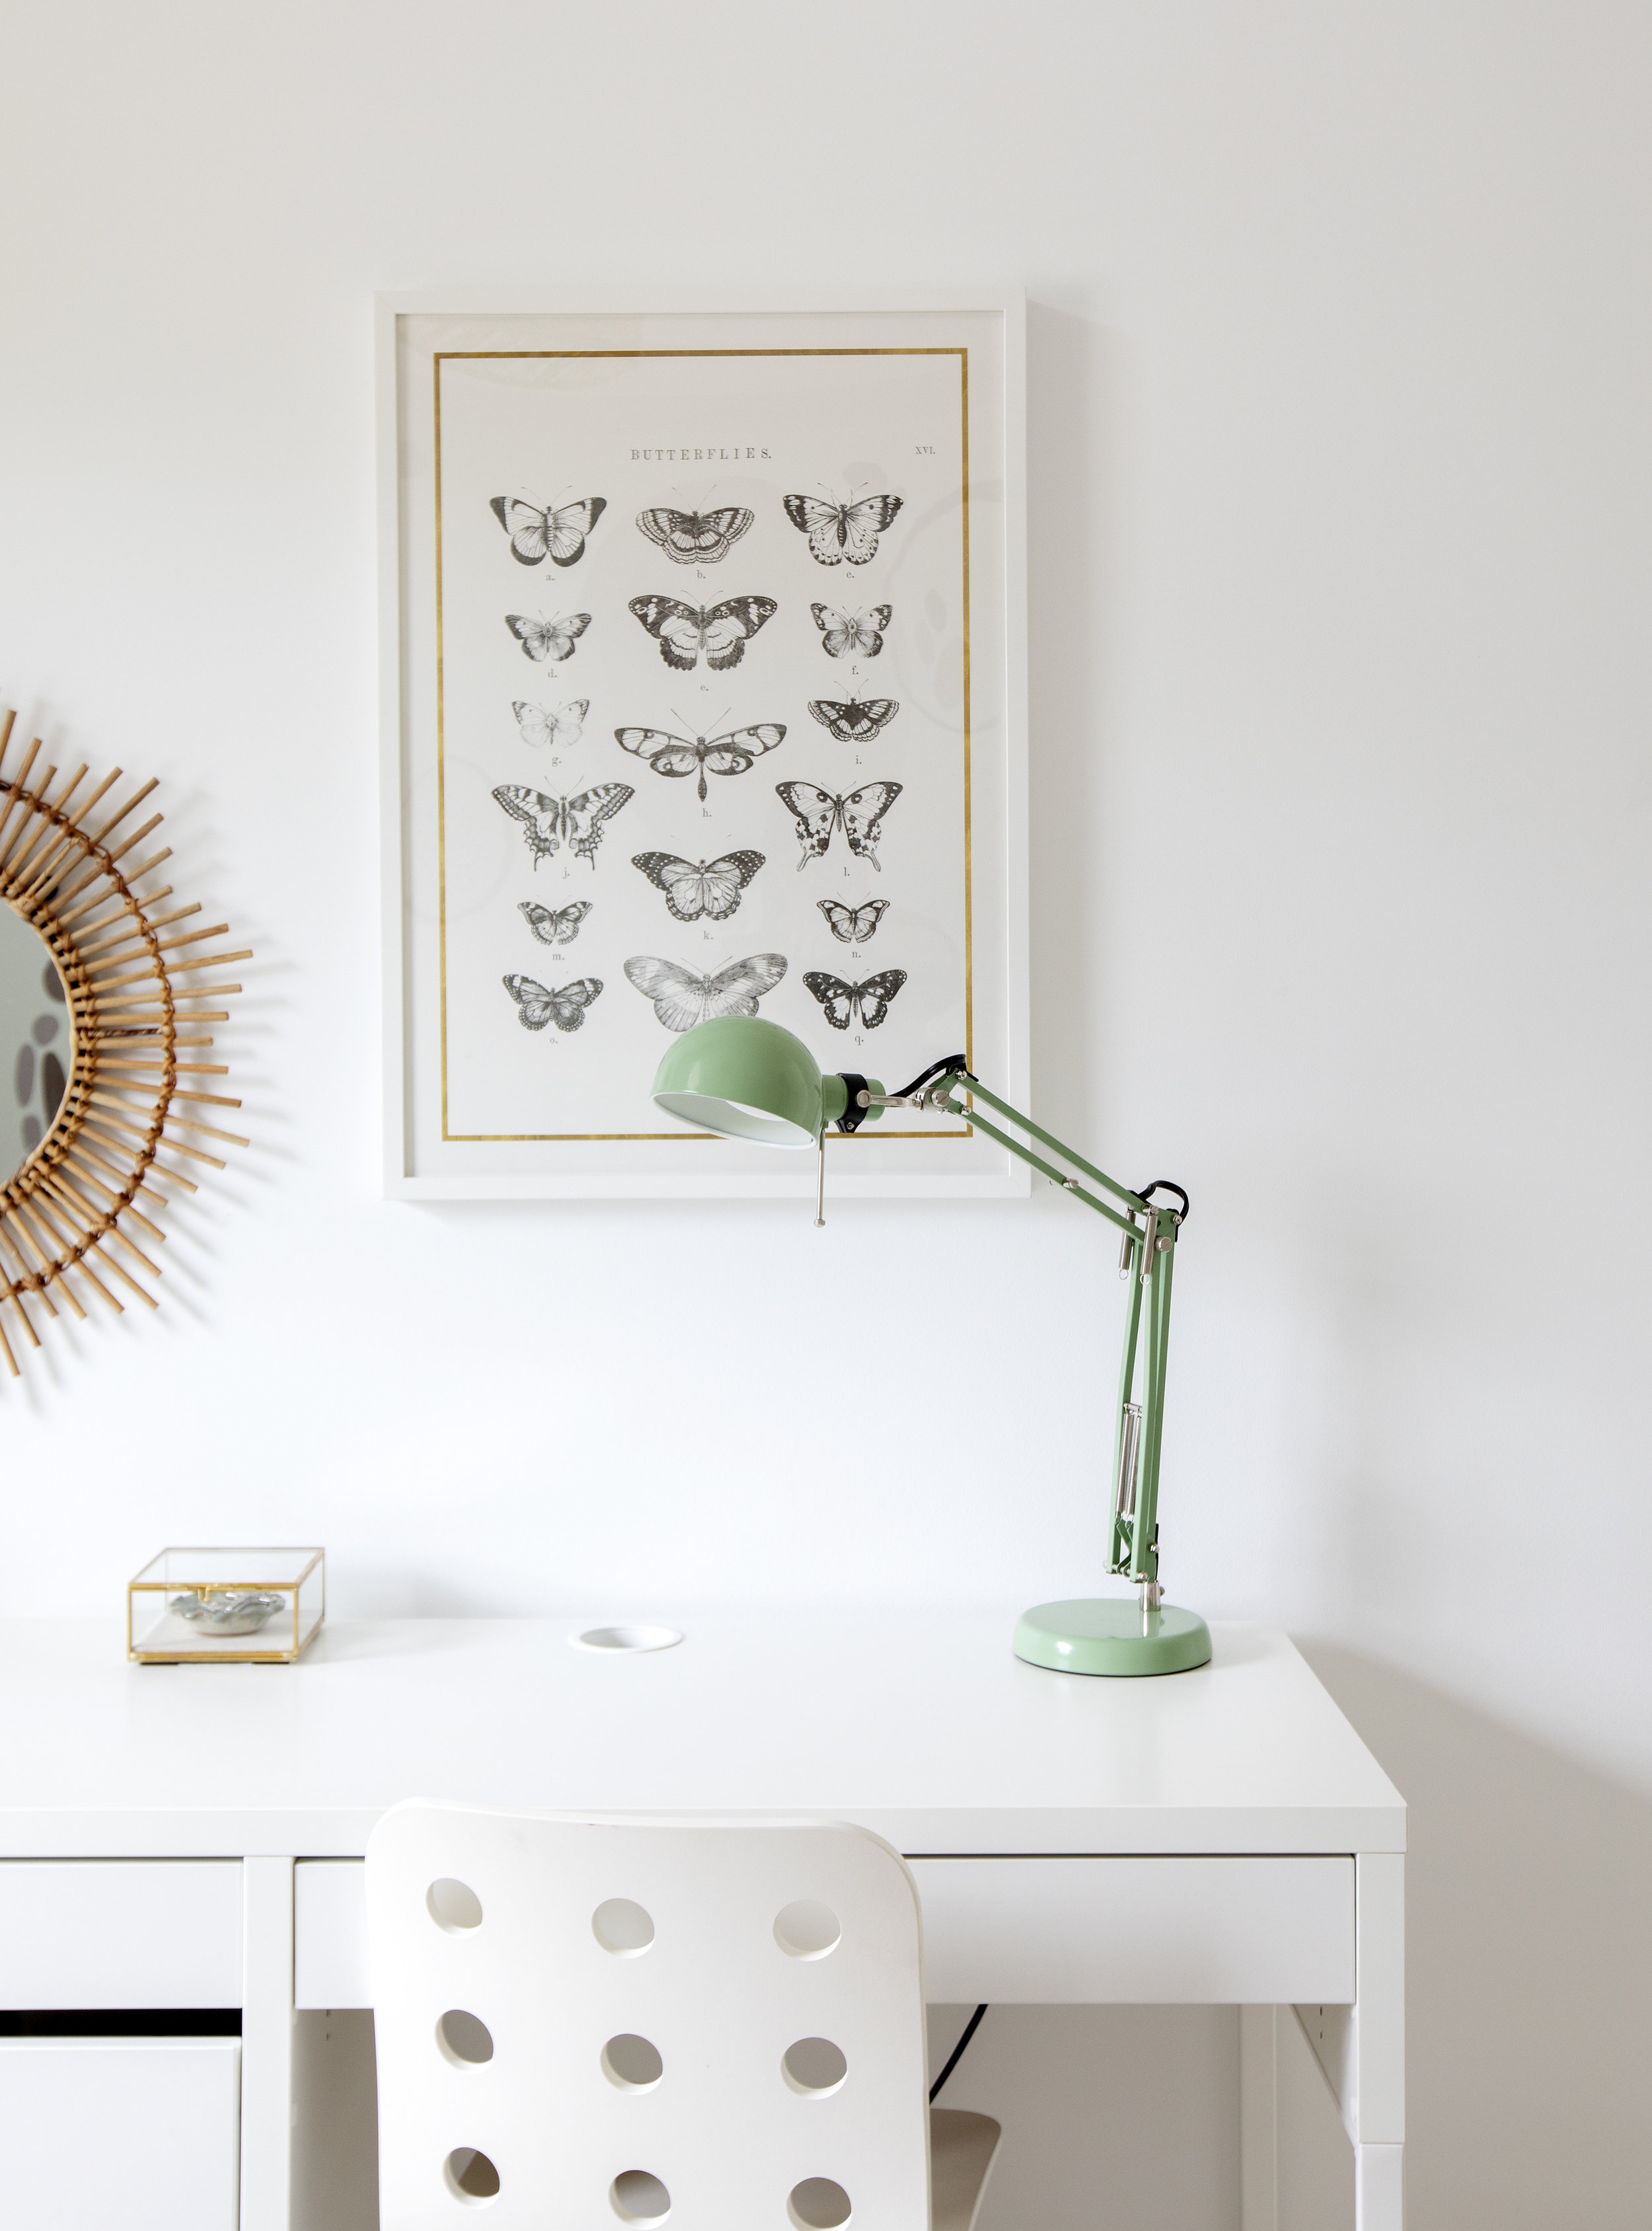 A homework desk contains a mint green lamp and faces a framed poster of butterflies.